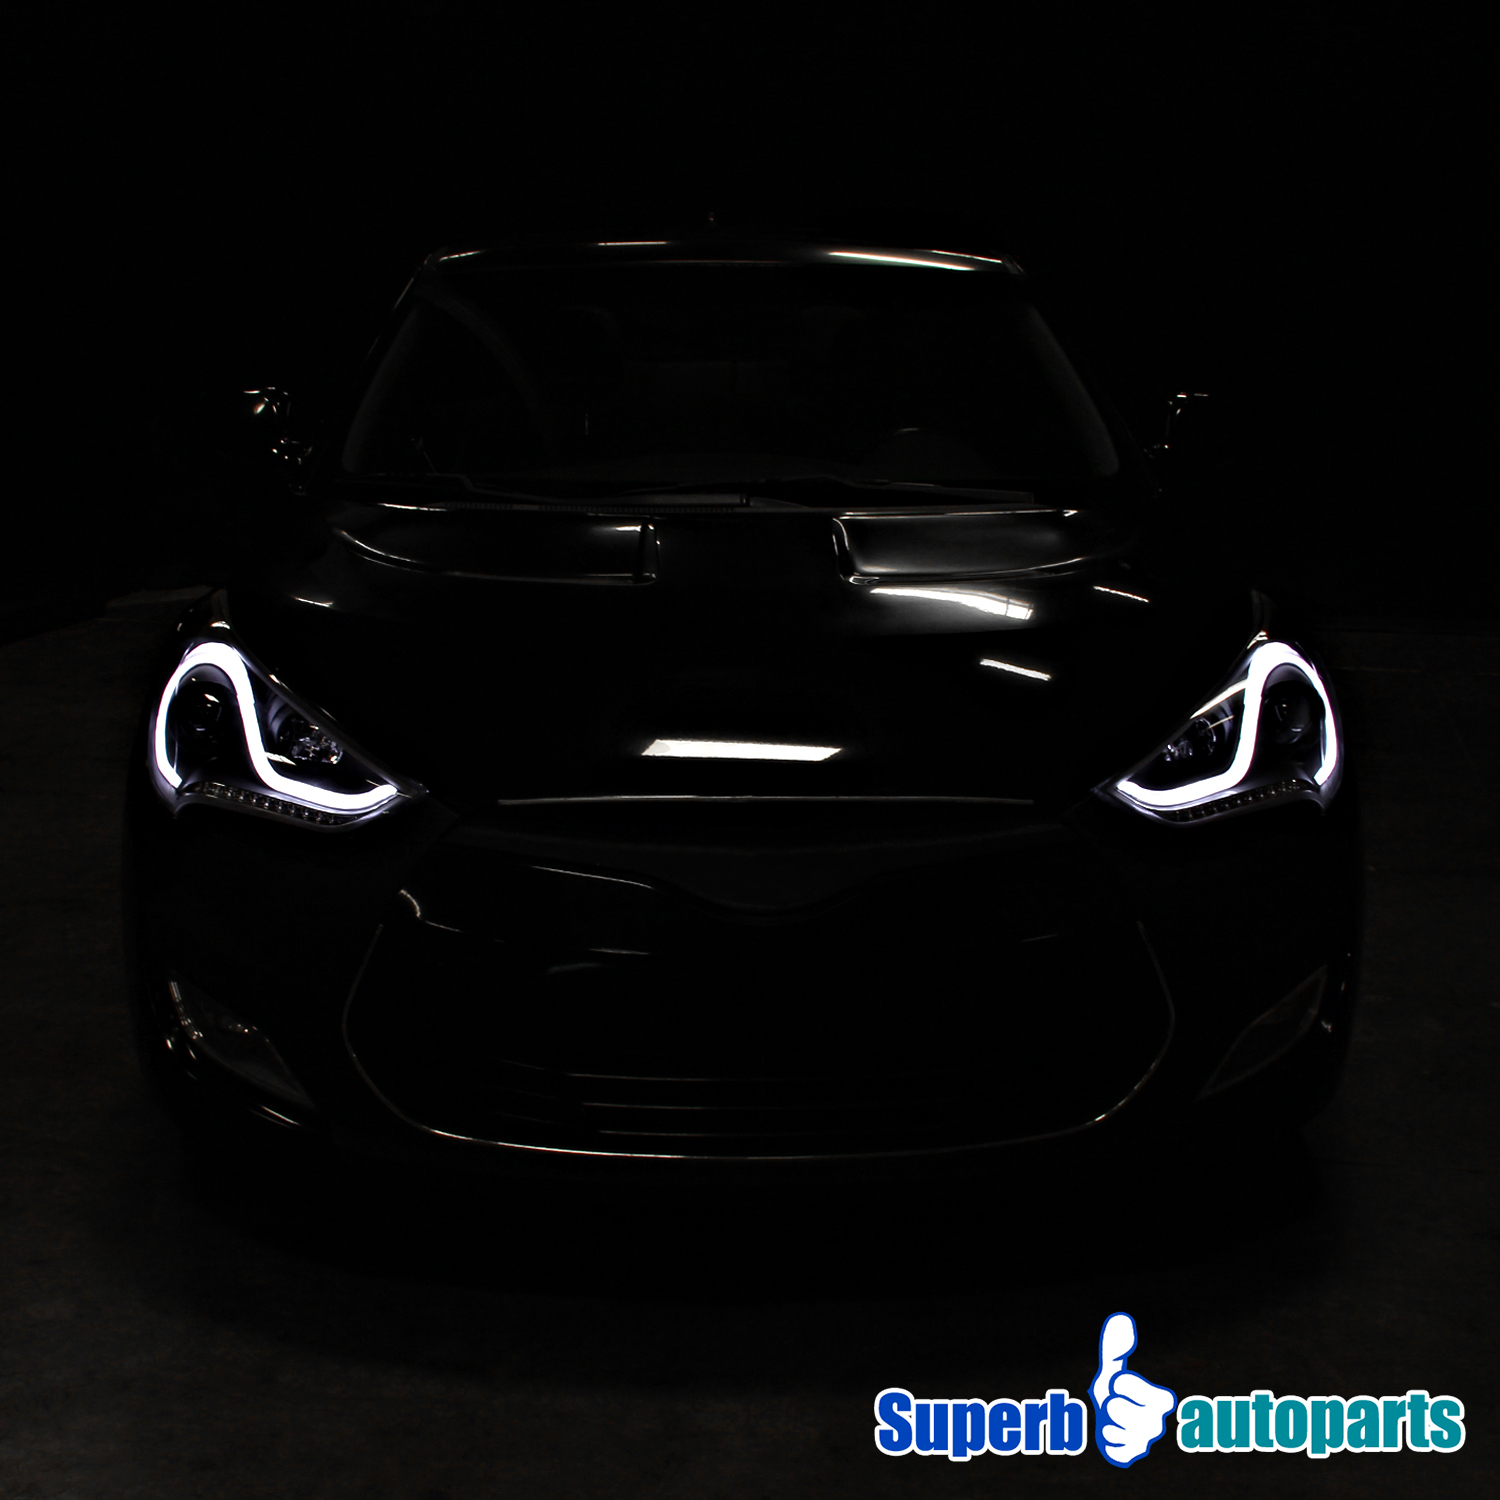 12 Hyundai Veloster: For 12-15 Hyundai Veloster LED Sequential Signal Projector